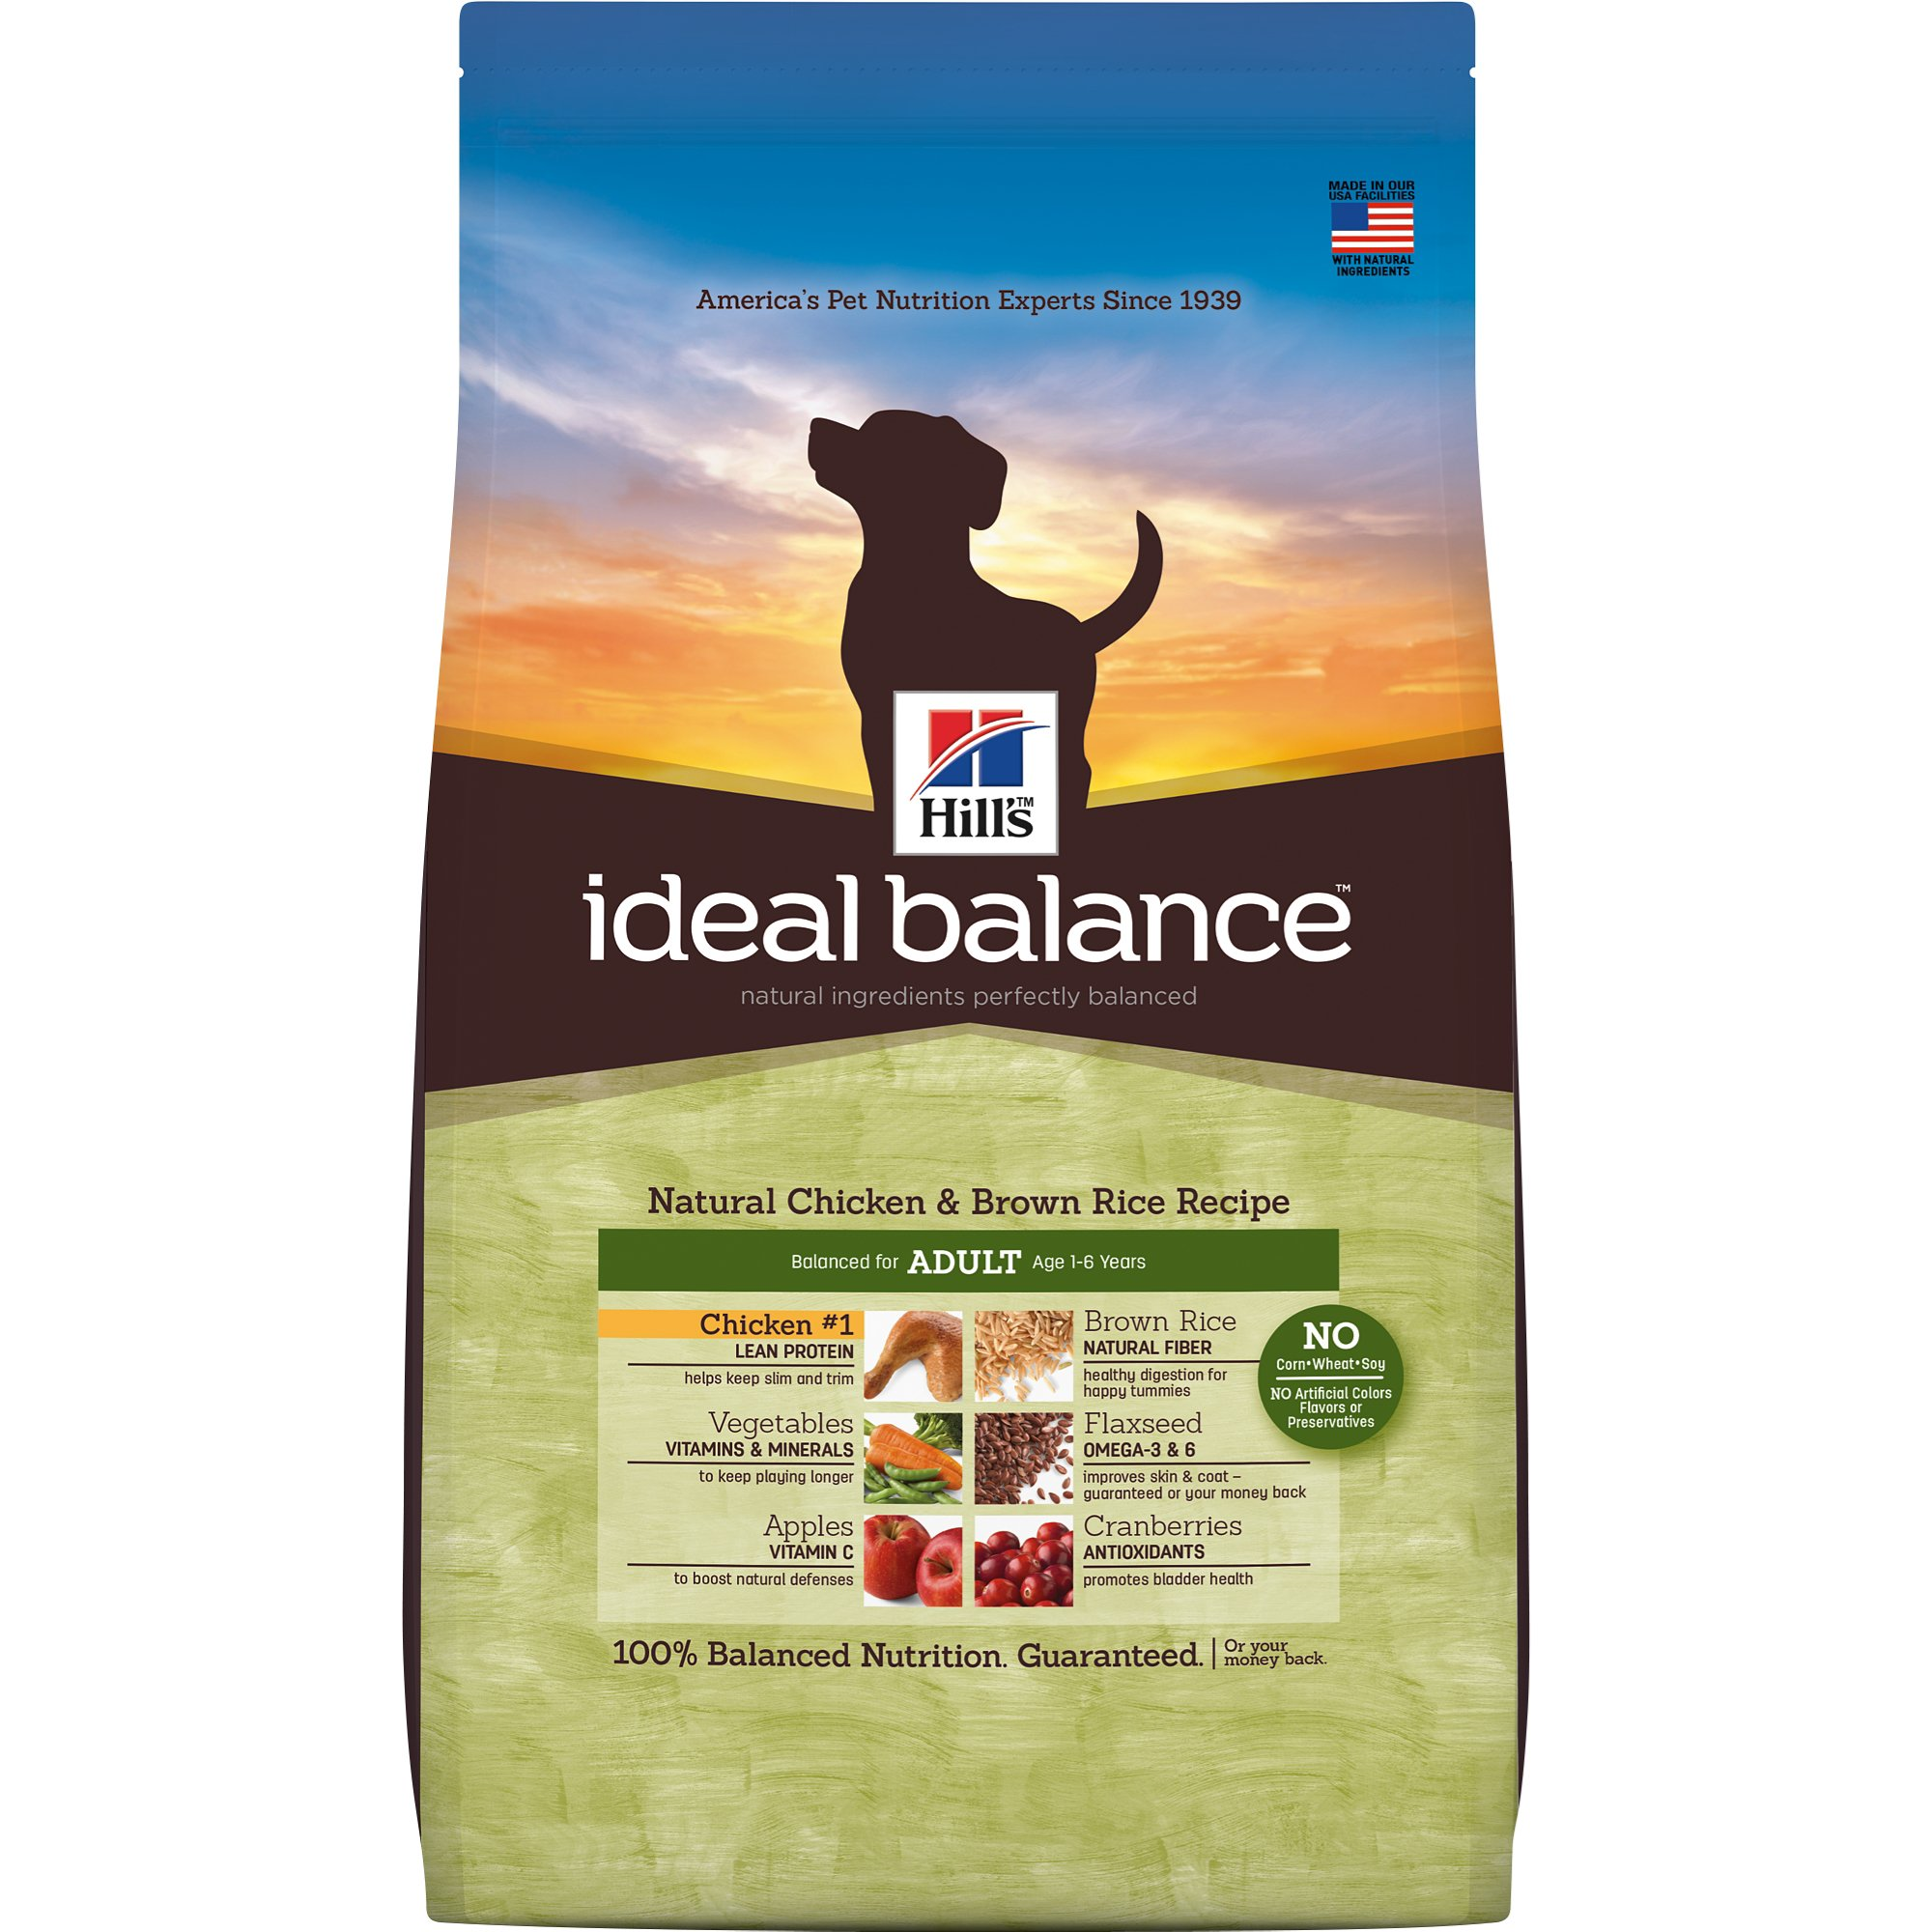 Hill's Ideal Balance Adult Natural Chicken & Brown Rice Recipe Dry Dog Food, 30 Lbs., Bag